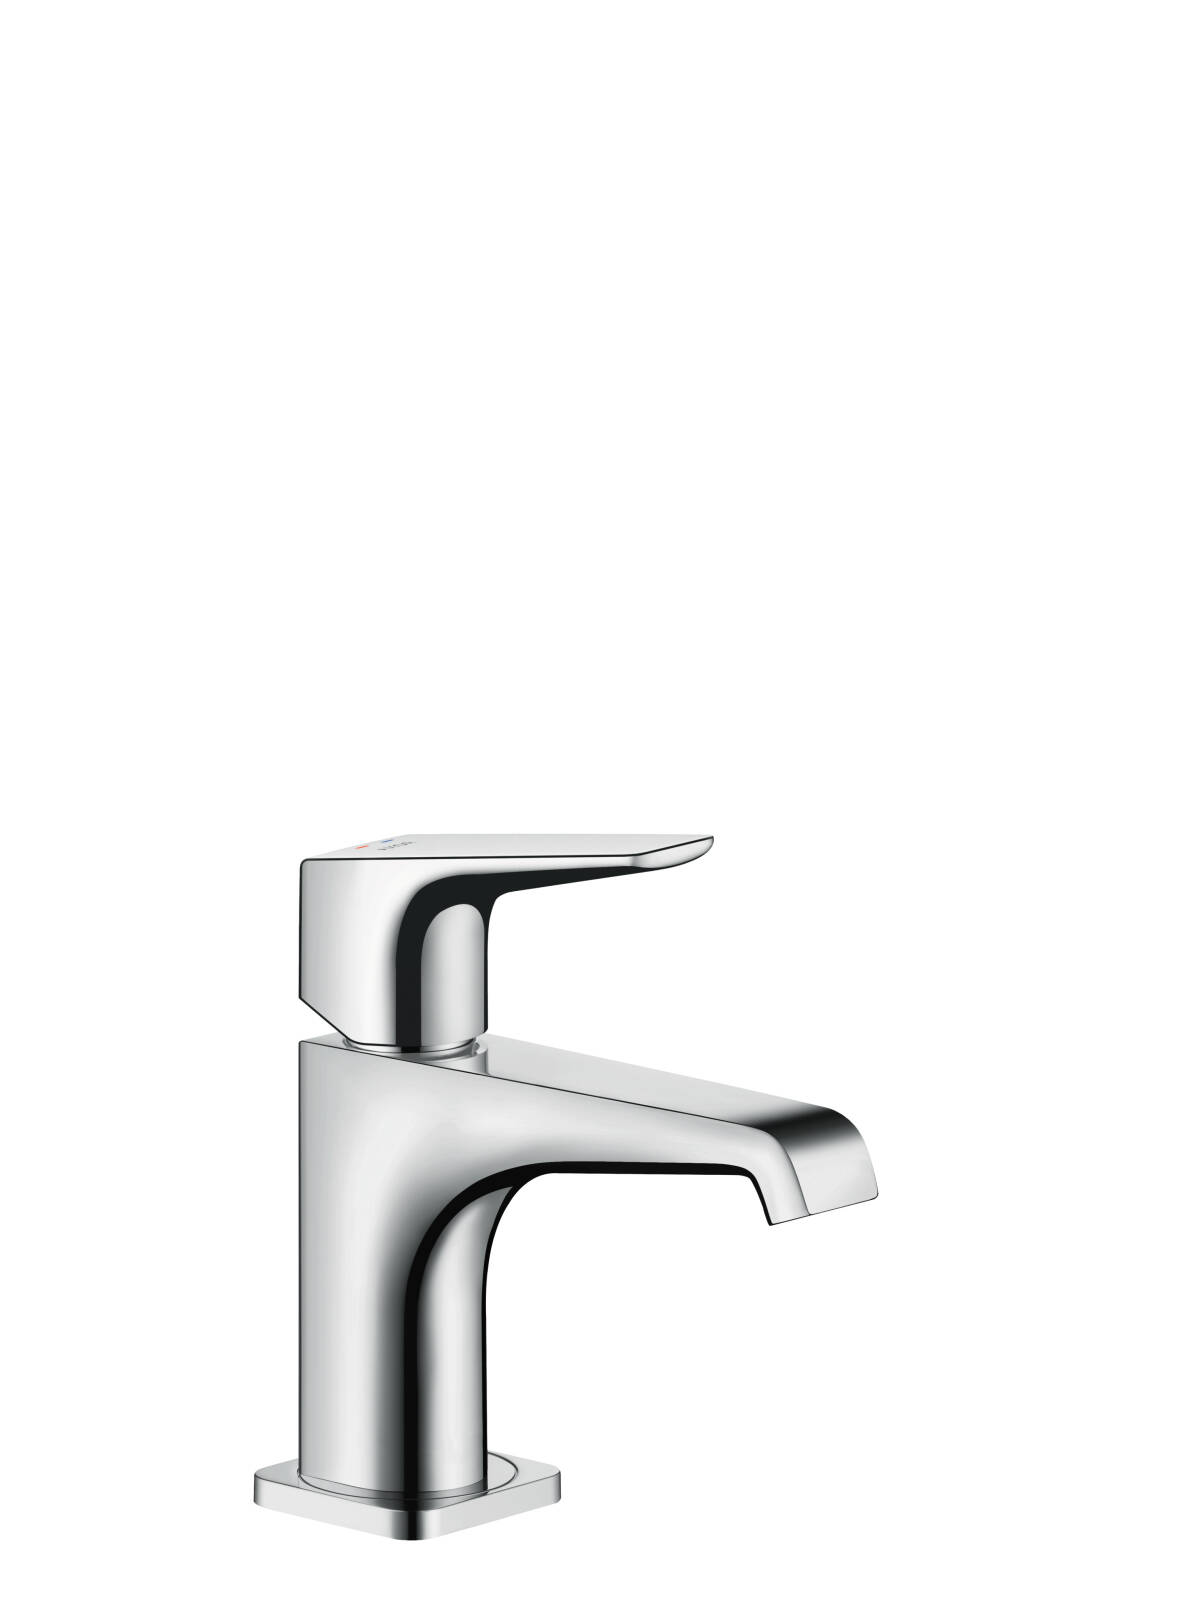 Single lever basin mixer 90 with lever handle for hand washbasins with waste set, Polished Black Chrome, 36112330